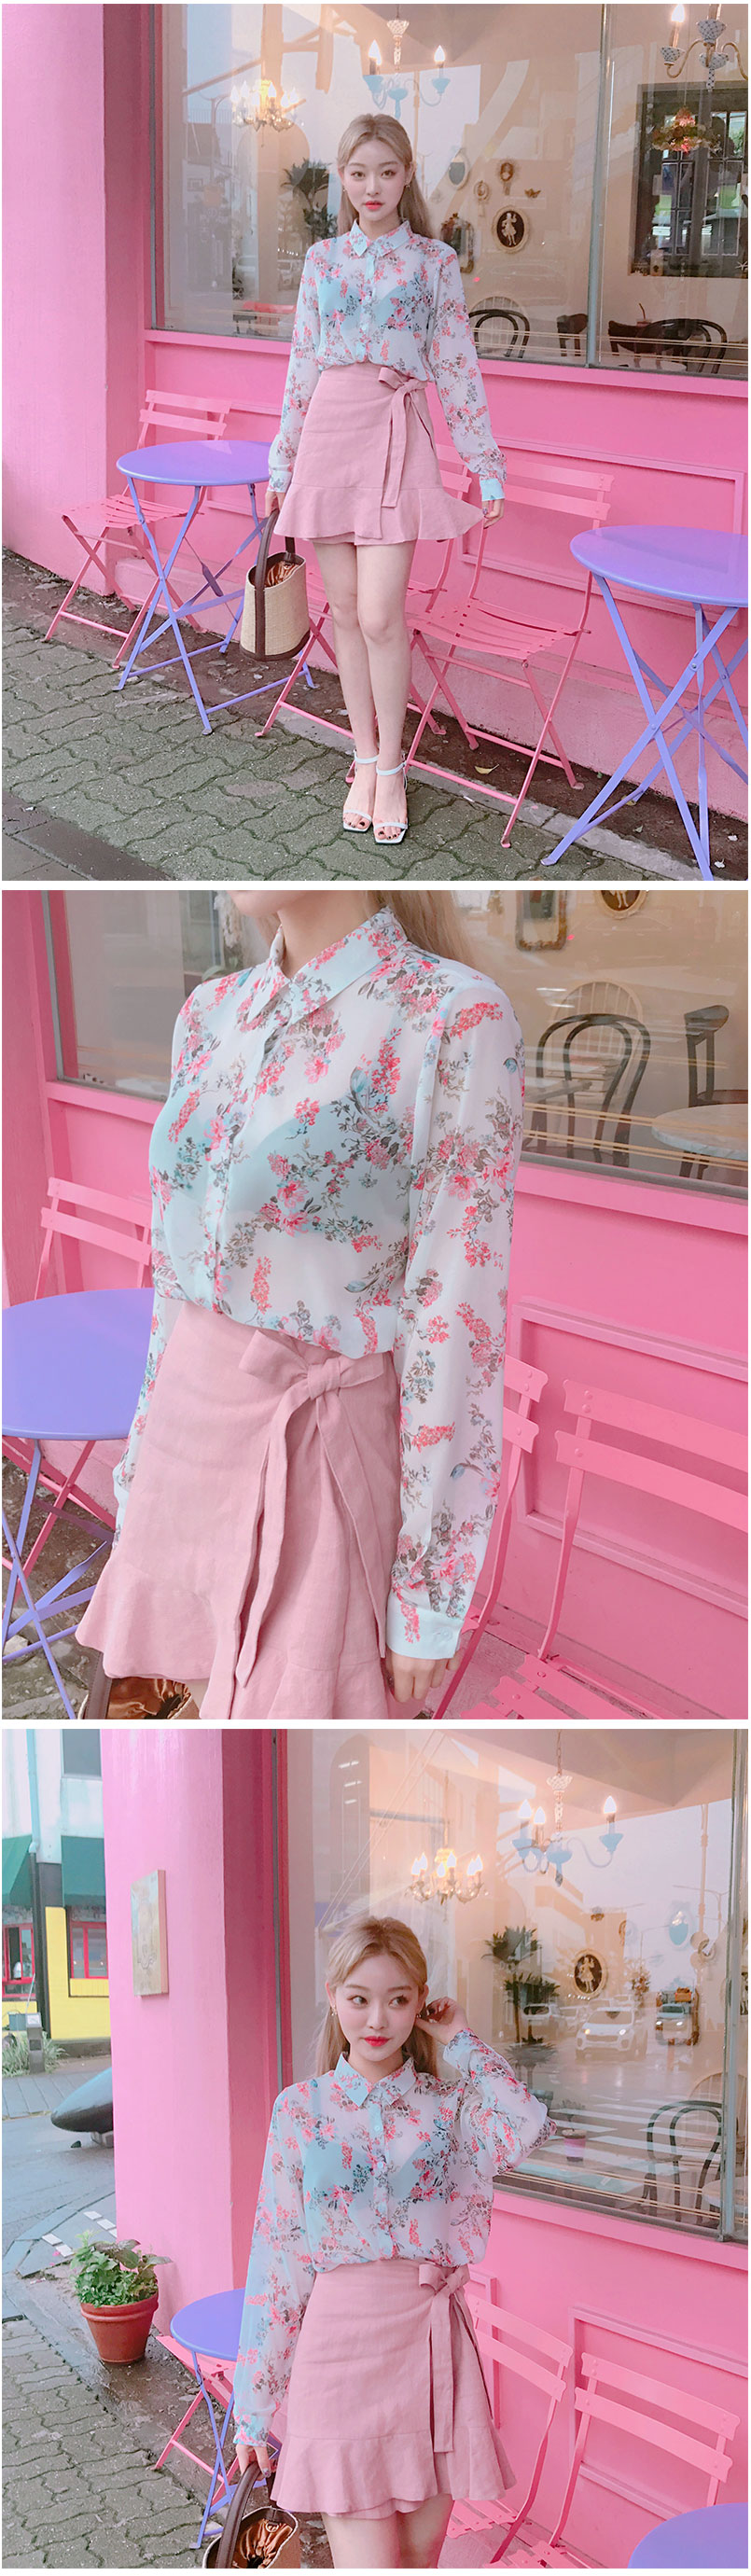 //cdn.nhanh.vn/cdn/store/29770/psCT/20181010/9452006/CHUU_By_My_Side_Flower_Blouse_(12).jpg